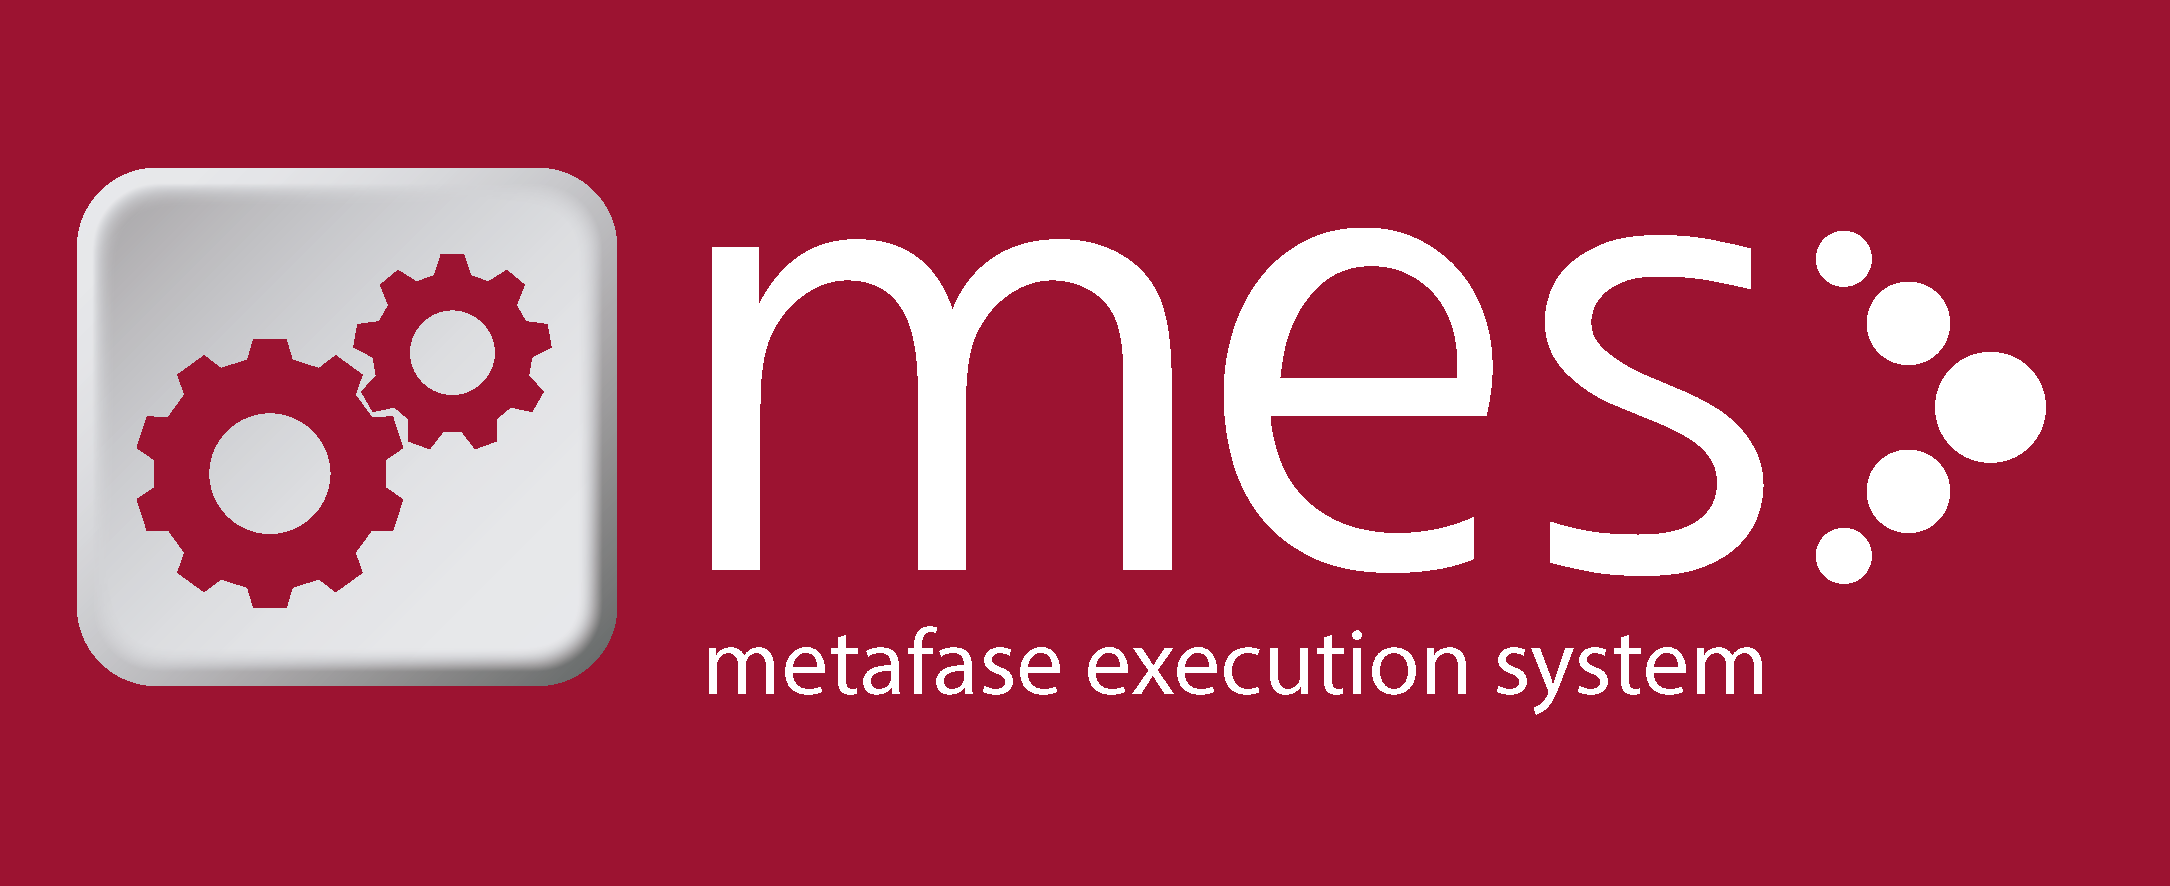 metafase-extecution-system